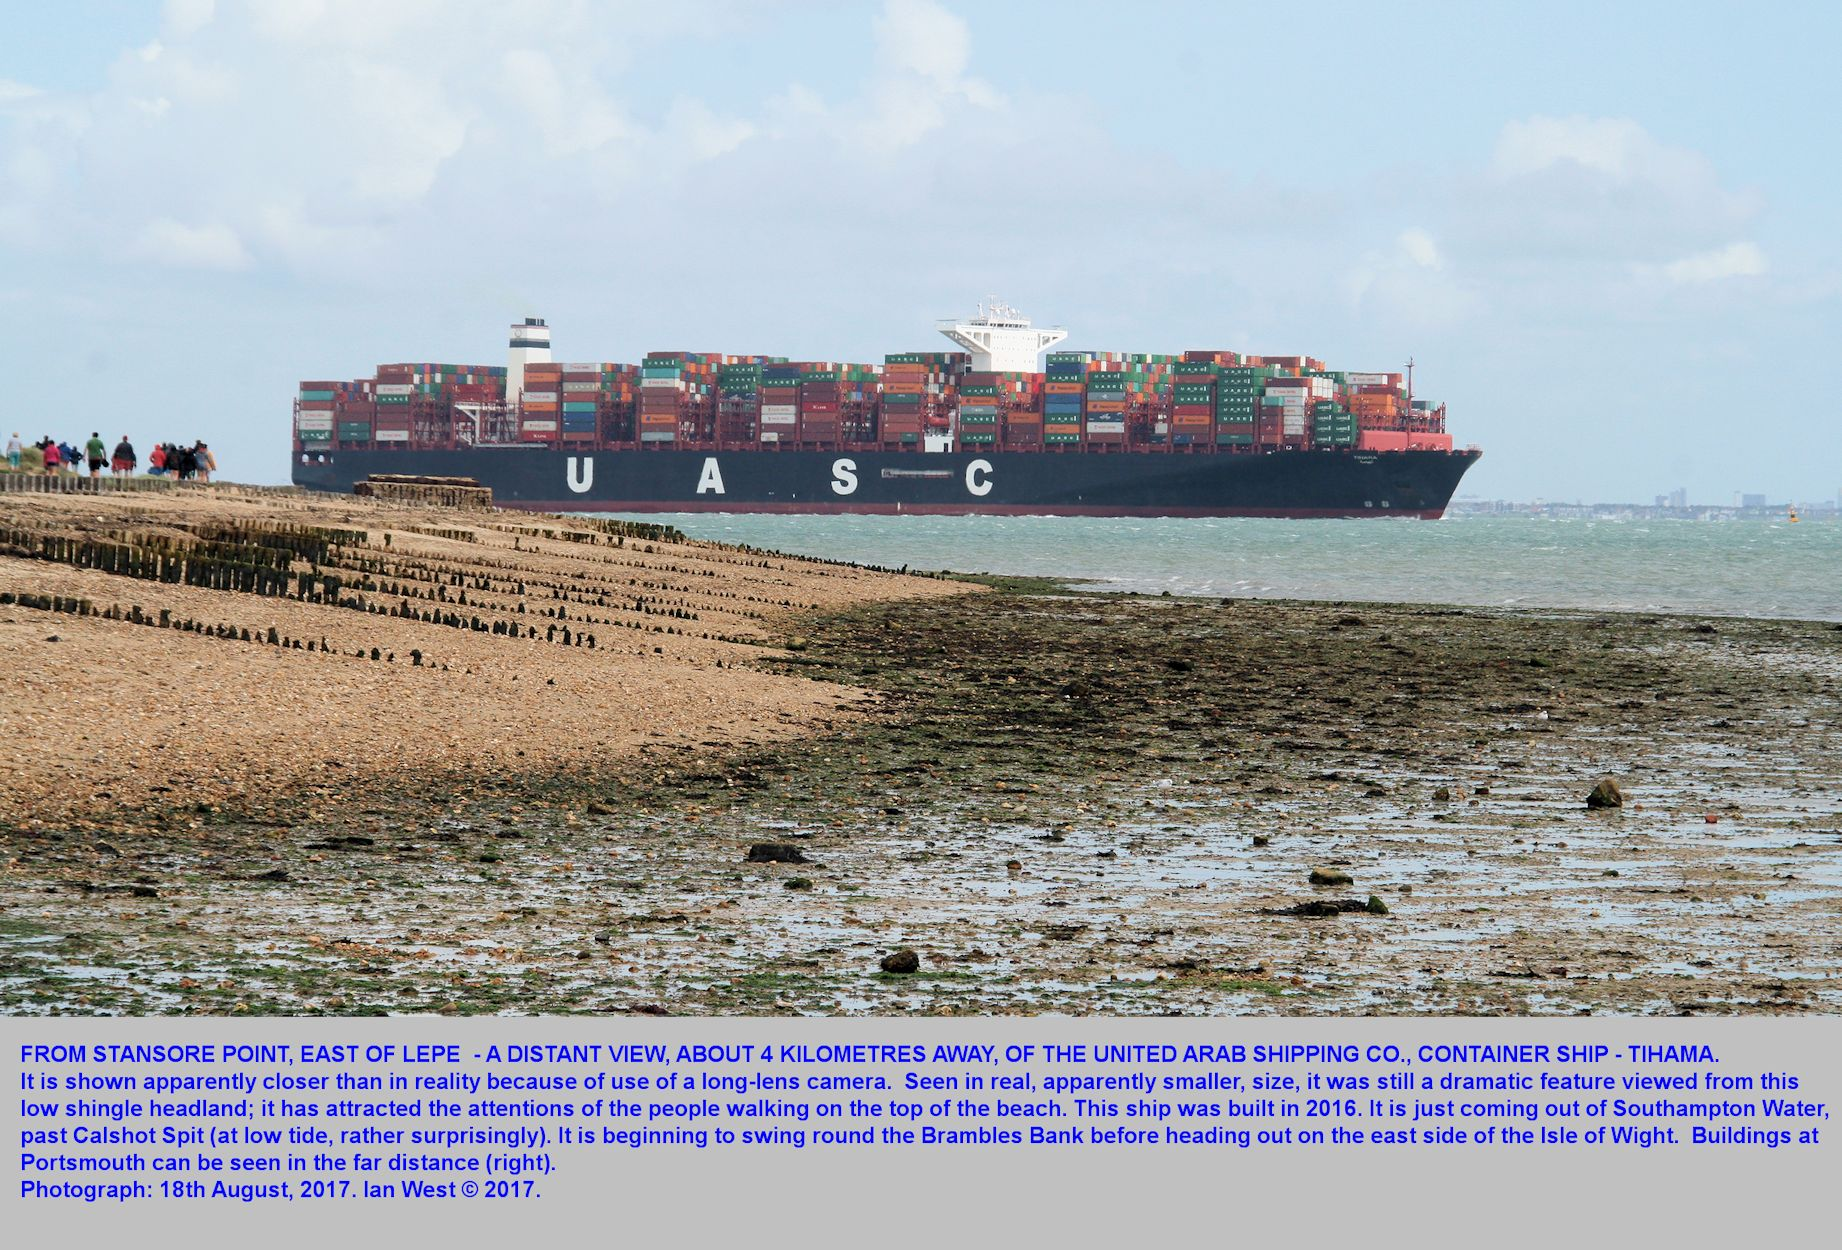 An unusually large ship, the Tihama of the United Arab Shipping Company, leaving Southampton Water, near Calshot Spit, but seen from Stansore Point, near Lepe,  Hampshire, 18th August 2017